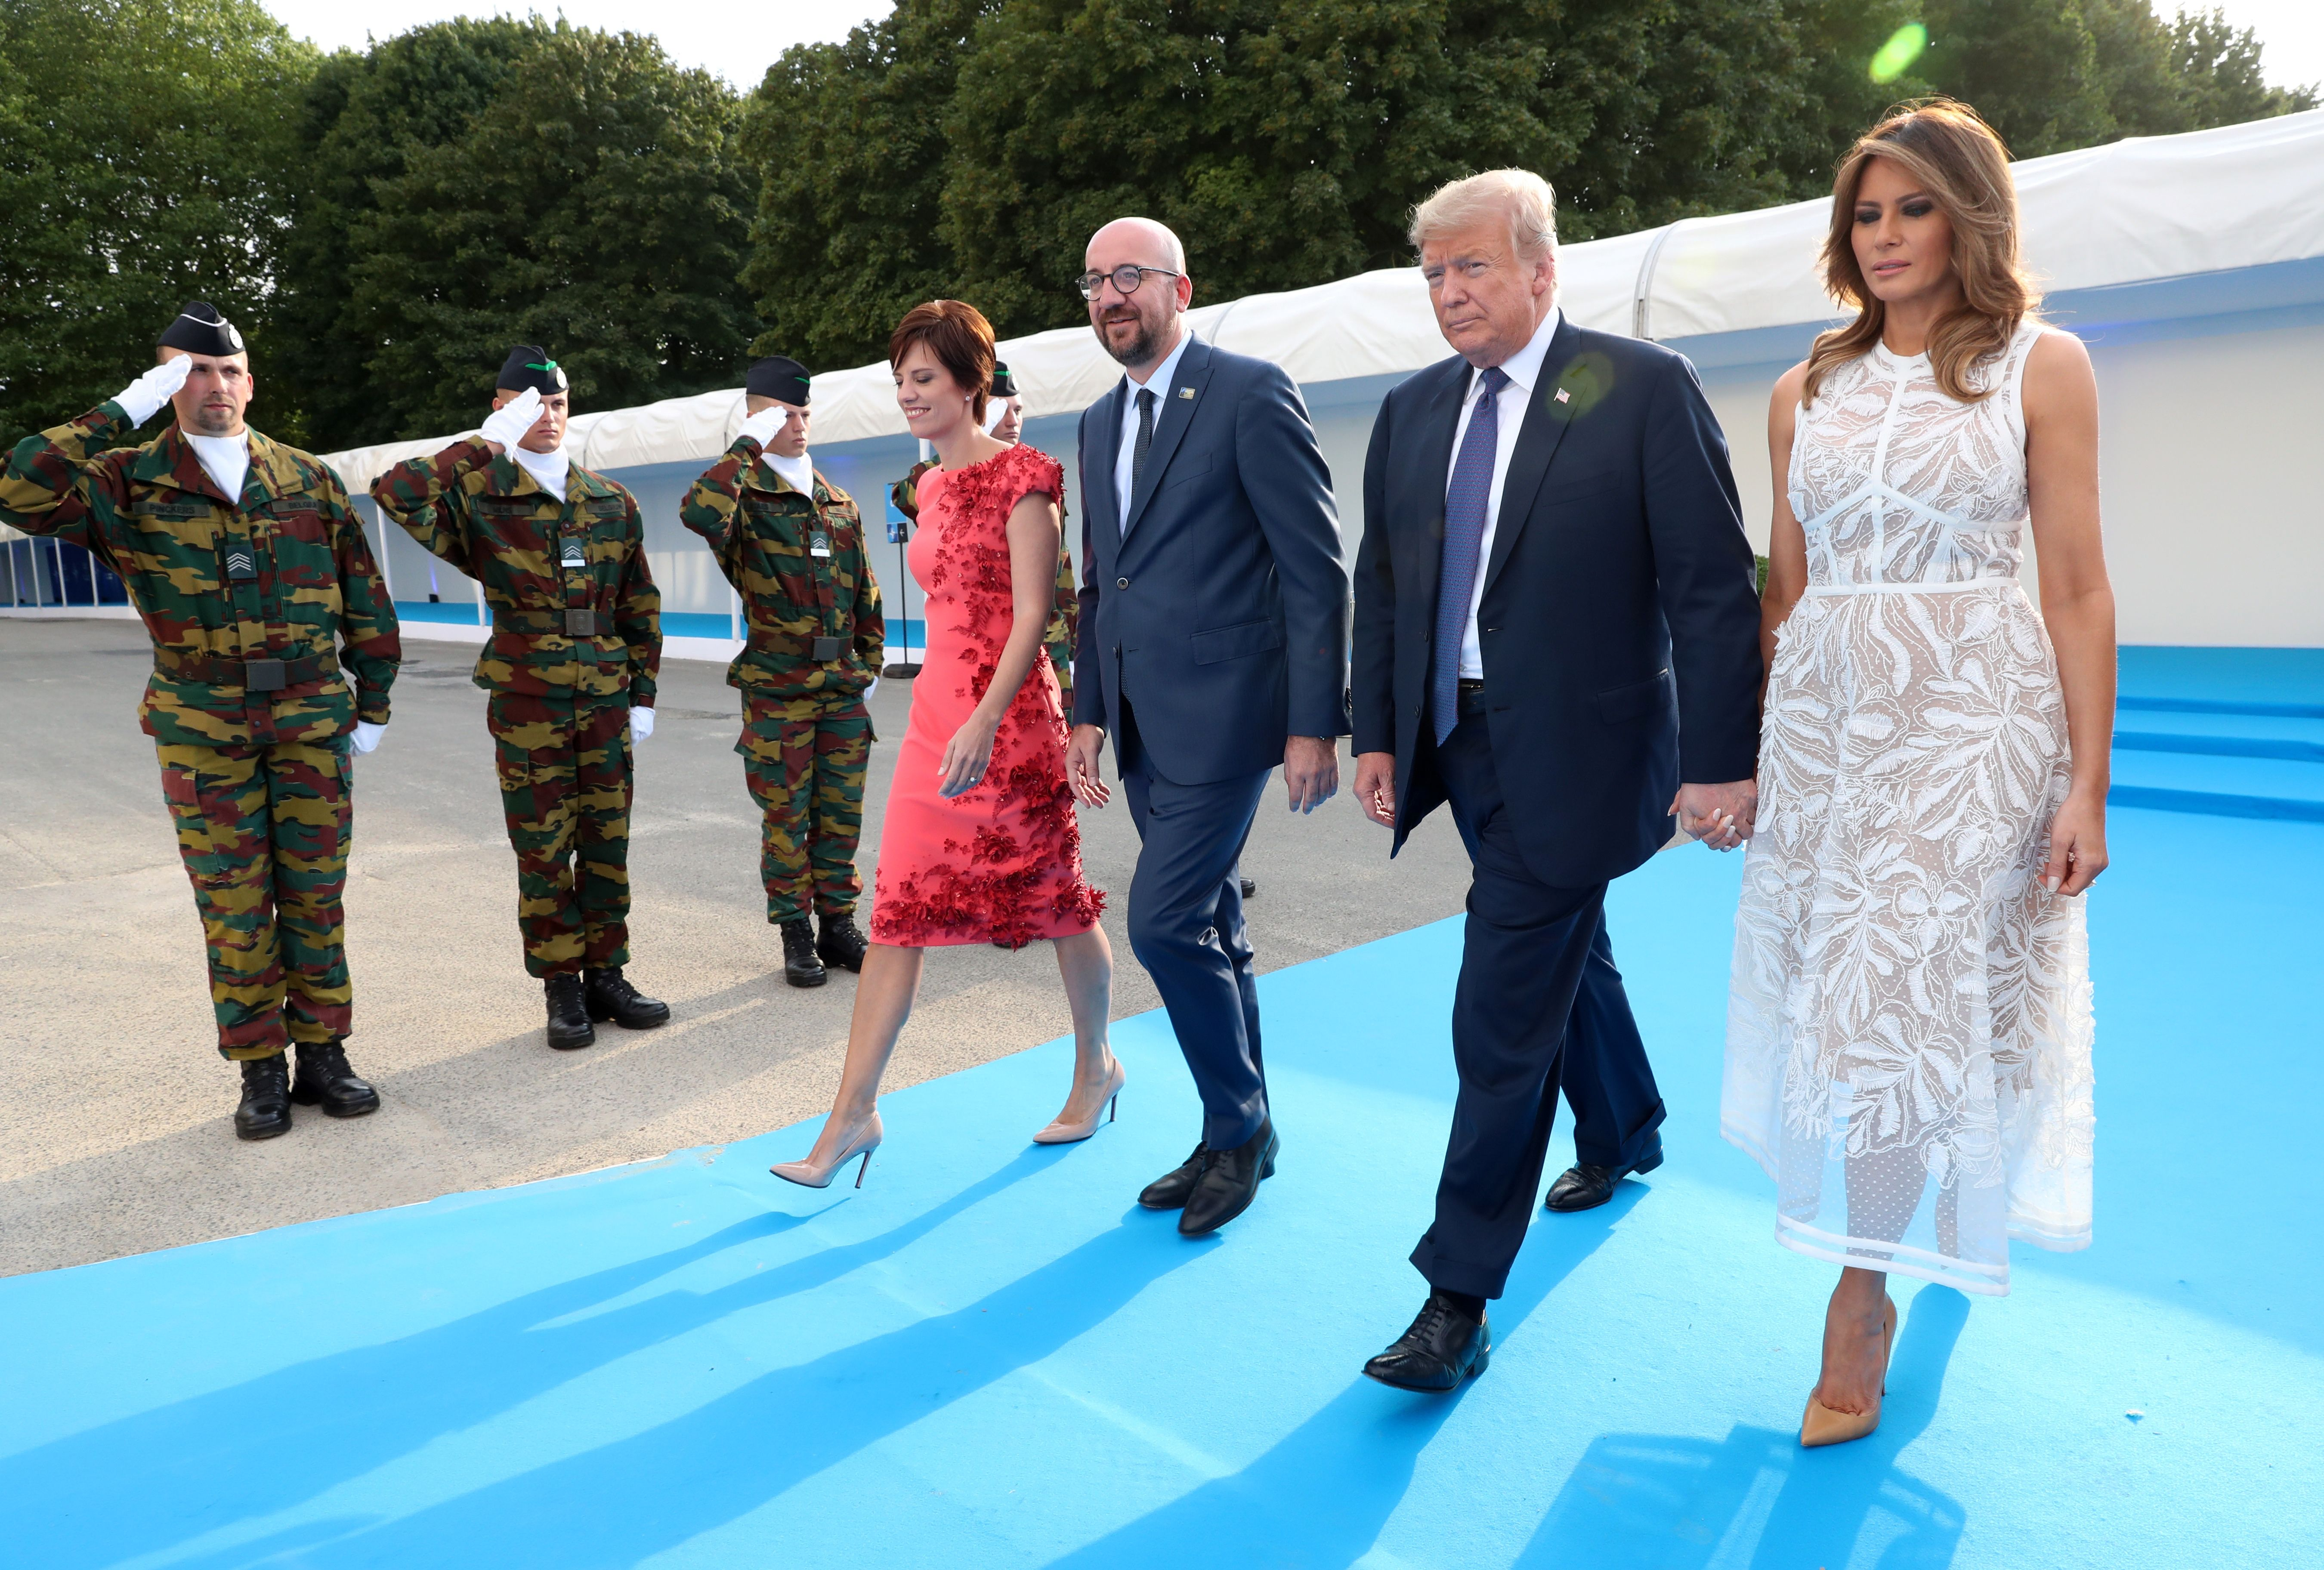 (Left to right) Belgian Prime Minister's partner Amelie Derbaudrenghien, Belgian Prime Minister Charles Michel, President Trump and Melania Trump arrive for the NATO dinner